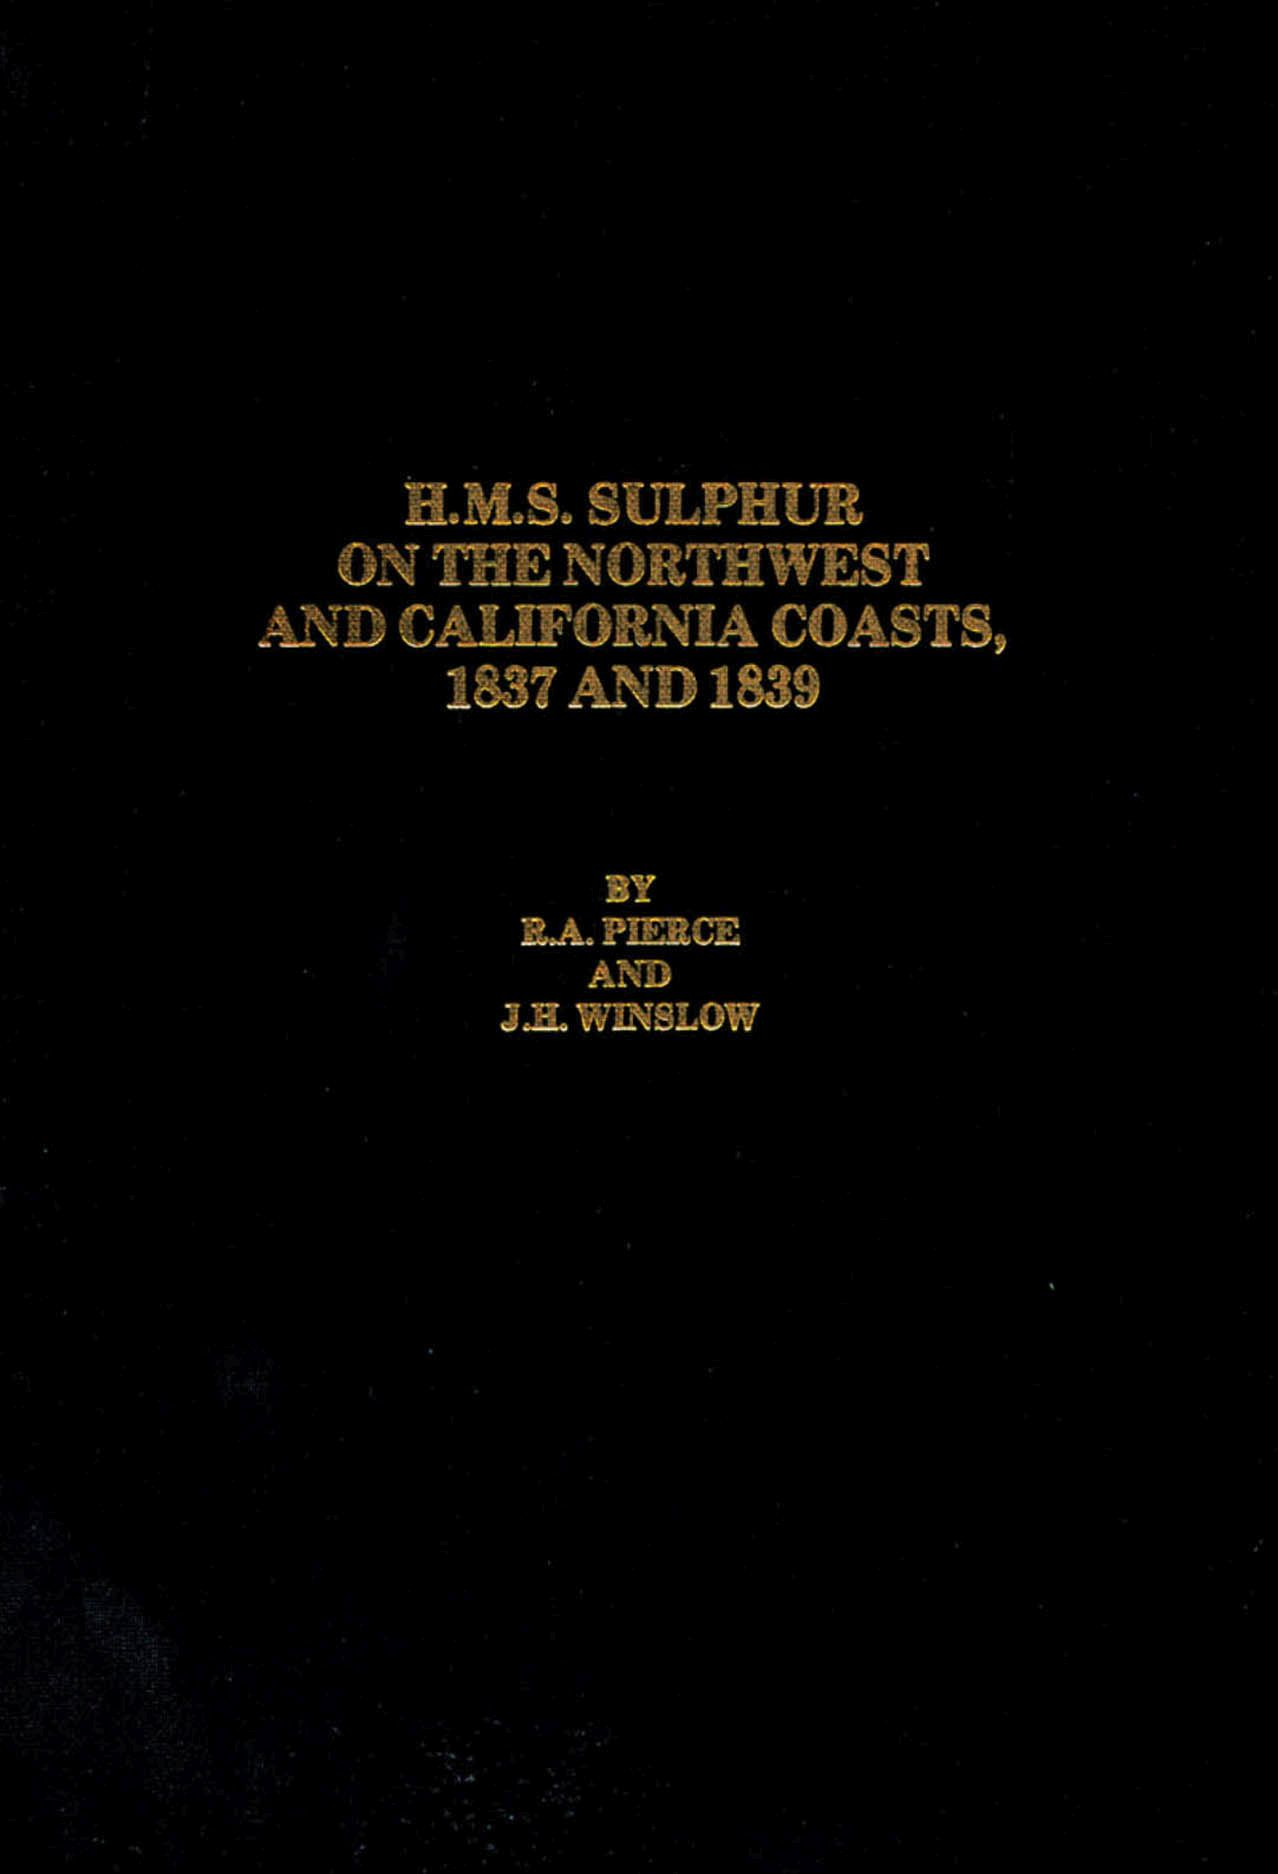 H.M.S. Sulphur on the Northwest and California Coasts, 1837 and 1839: The Accounts of Captain Edward Belcher and Midshipman Francis Guillemard Simpkin